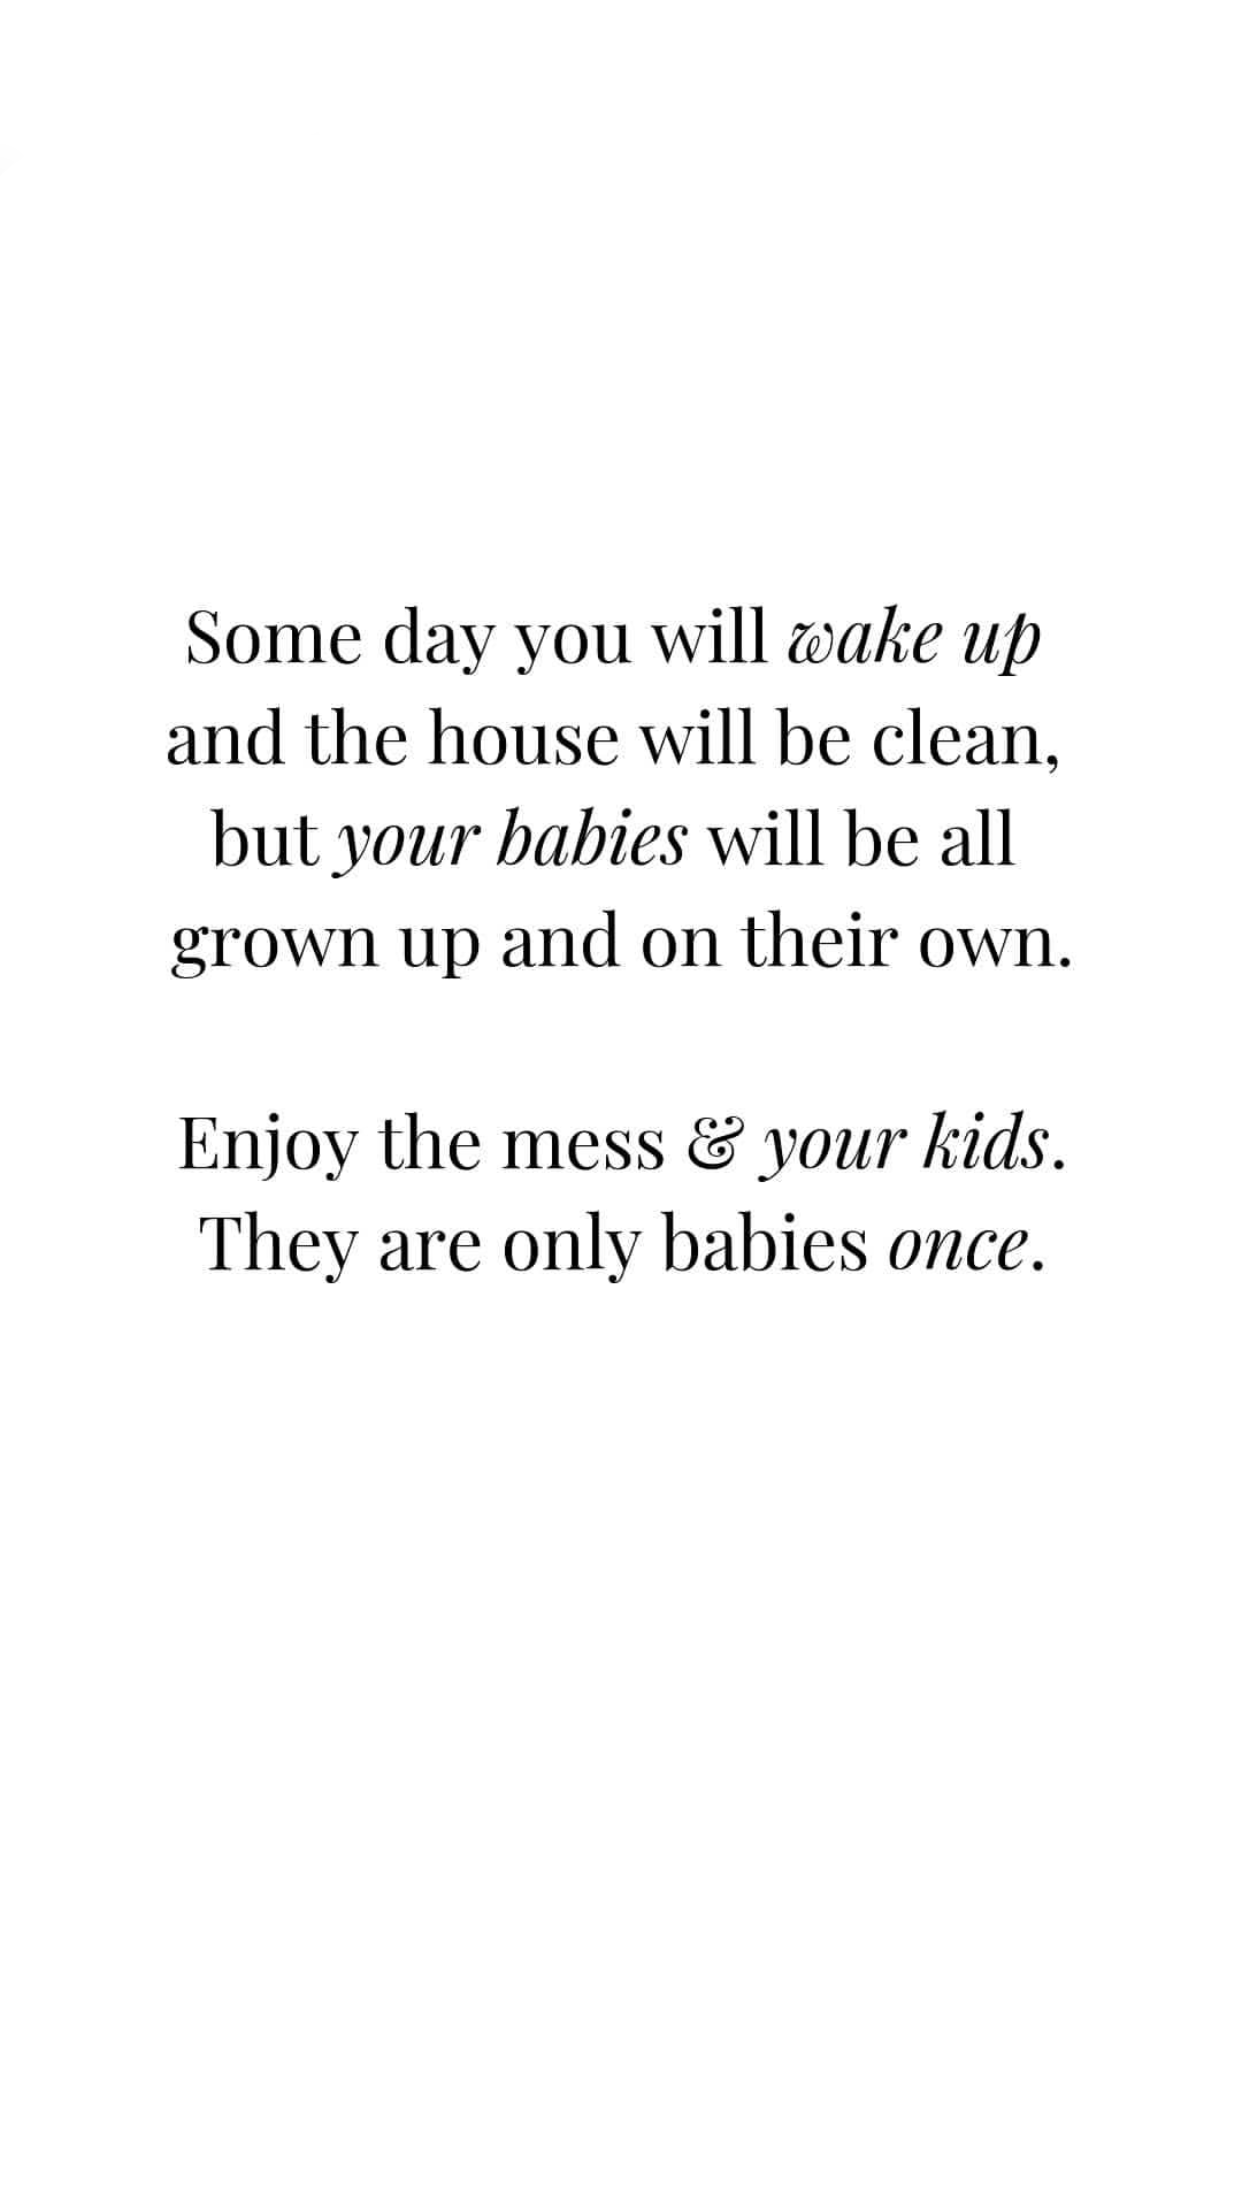 Pin By Anna Koivumaki On Wise Words Wise Words Words Growing Up